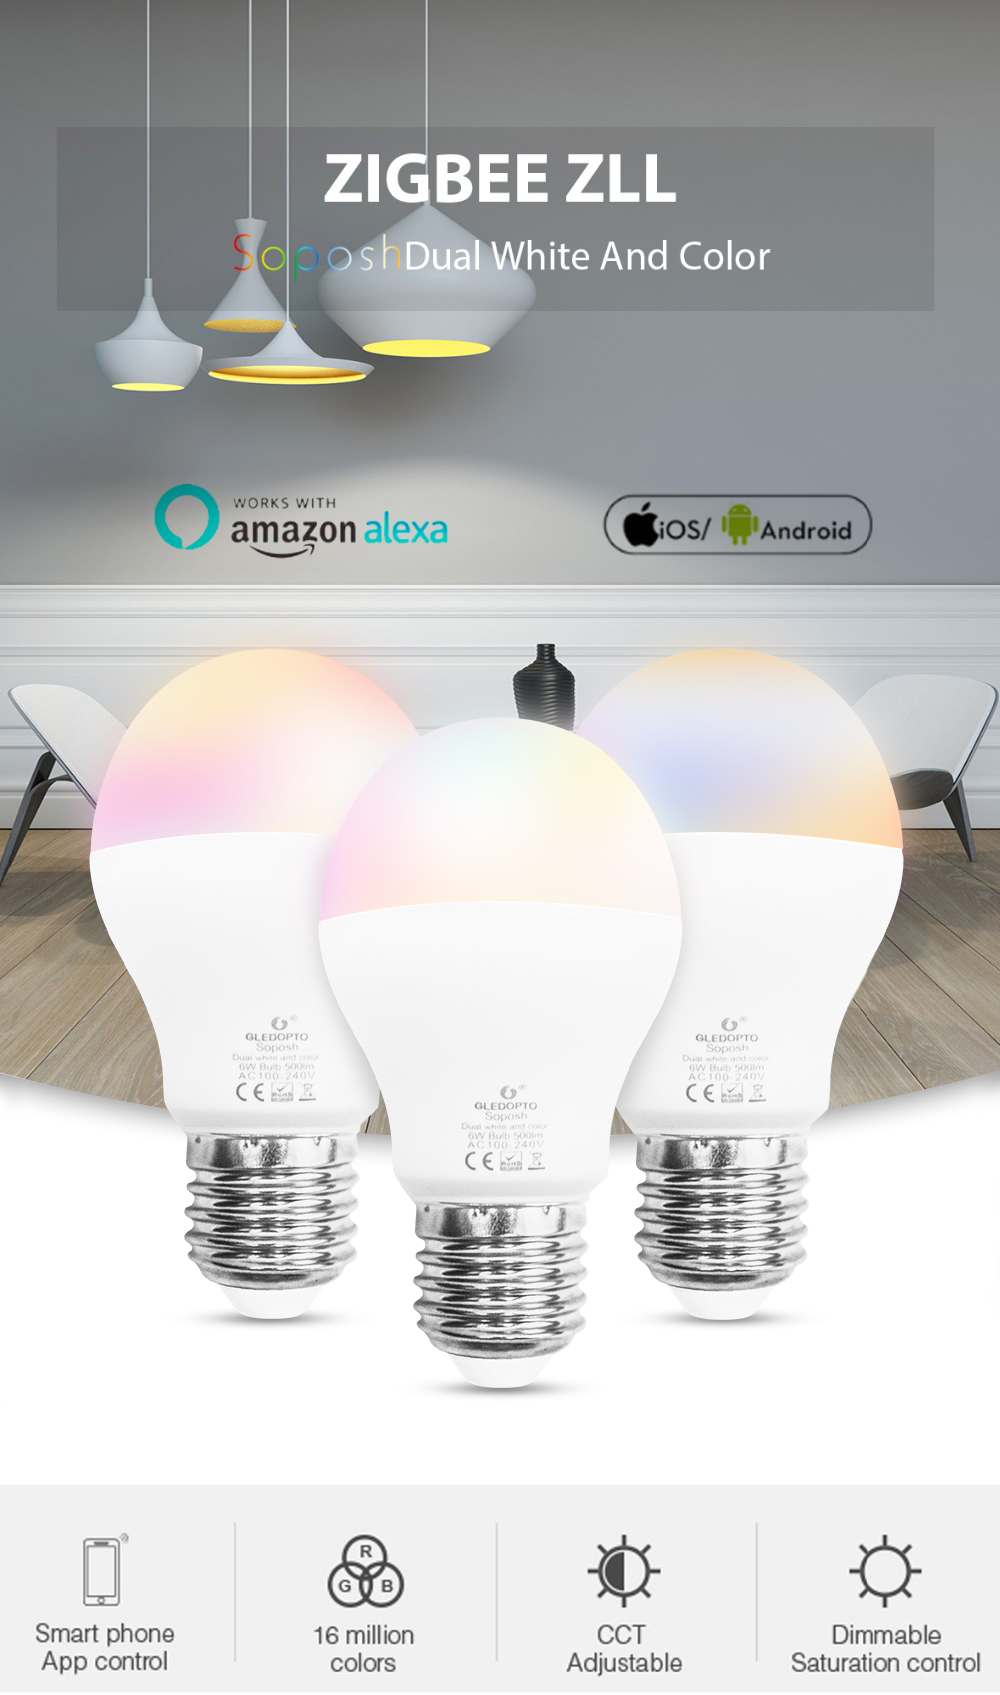 GLEDOPTO Zig.Bee GL-B-007Z AC100-240V E27 6W RGBWW Smart LED Light Bulb Compatible with Philips HUE